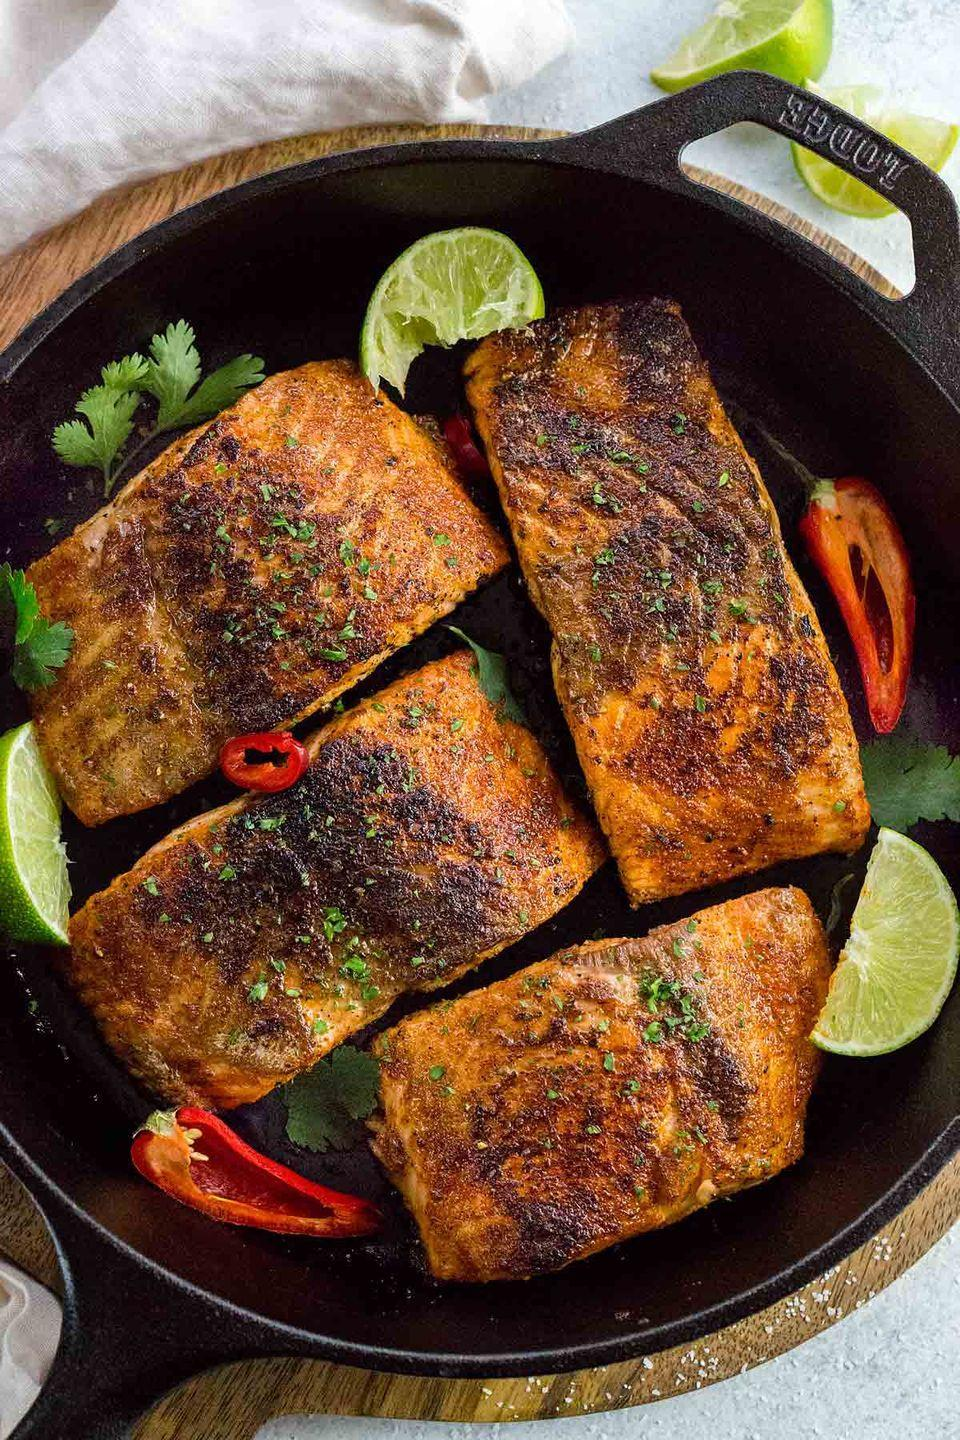 """<p>This salmon by<a href=""""https://www.jessicagavin.com/blackened-salmon/"""" rel=""""nofollow noopener"""" target=""""_blank"""" data-ylk=""""slk:Jessica Gavin"""" class=""""link rapid-noclick-resp""""> Jessica Gavin</a> is simple and flavorful and it has a wonderful dark, crispy crust that adds some texture on top. Blending savory, spicy, and sweet, it creates the perfect balance in each bite, and it's loaded with good fats from the fish to help you drop those pounds.</p>"""